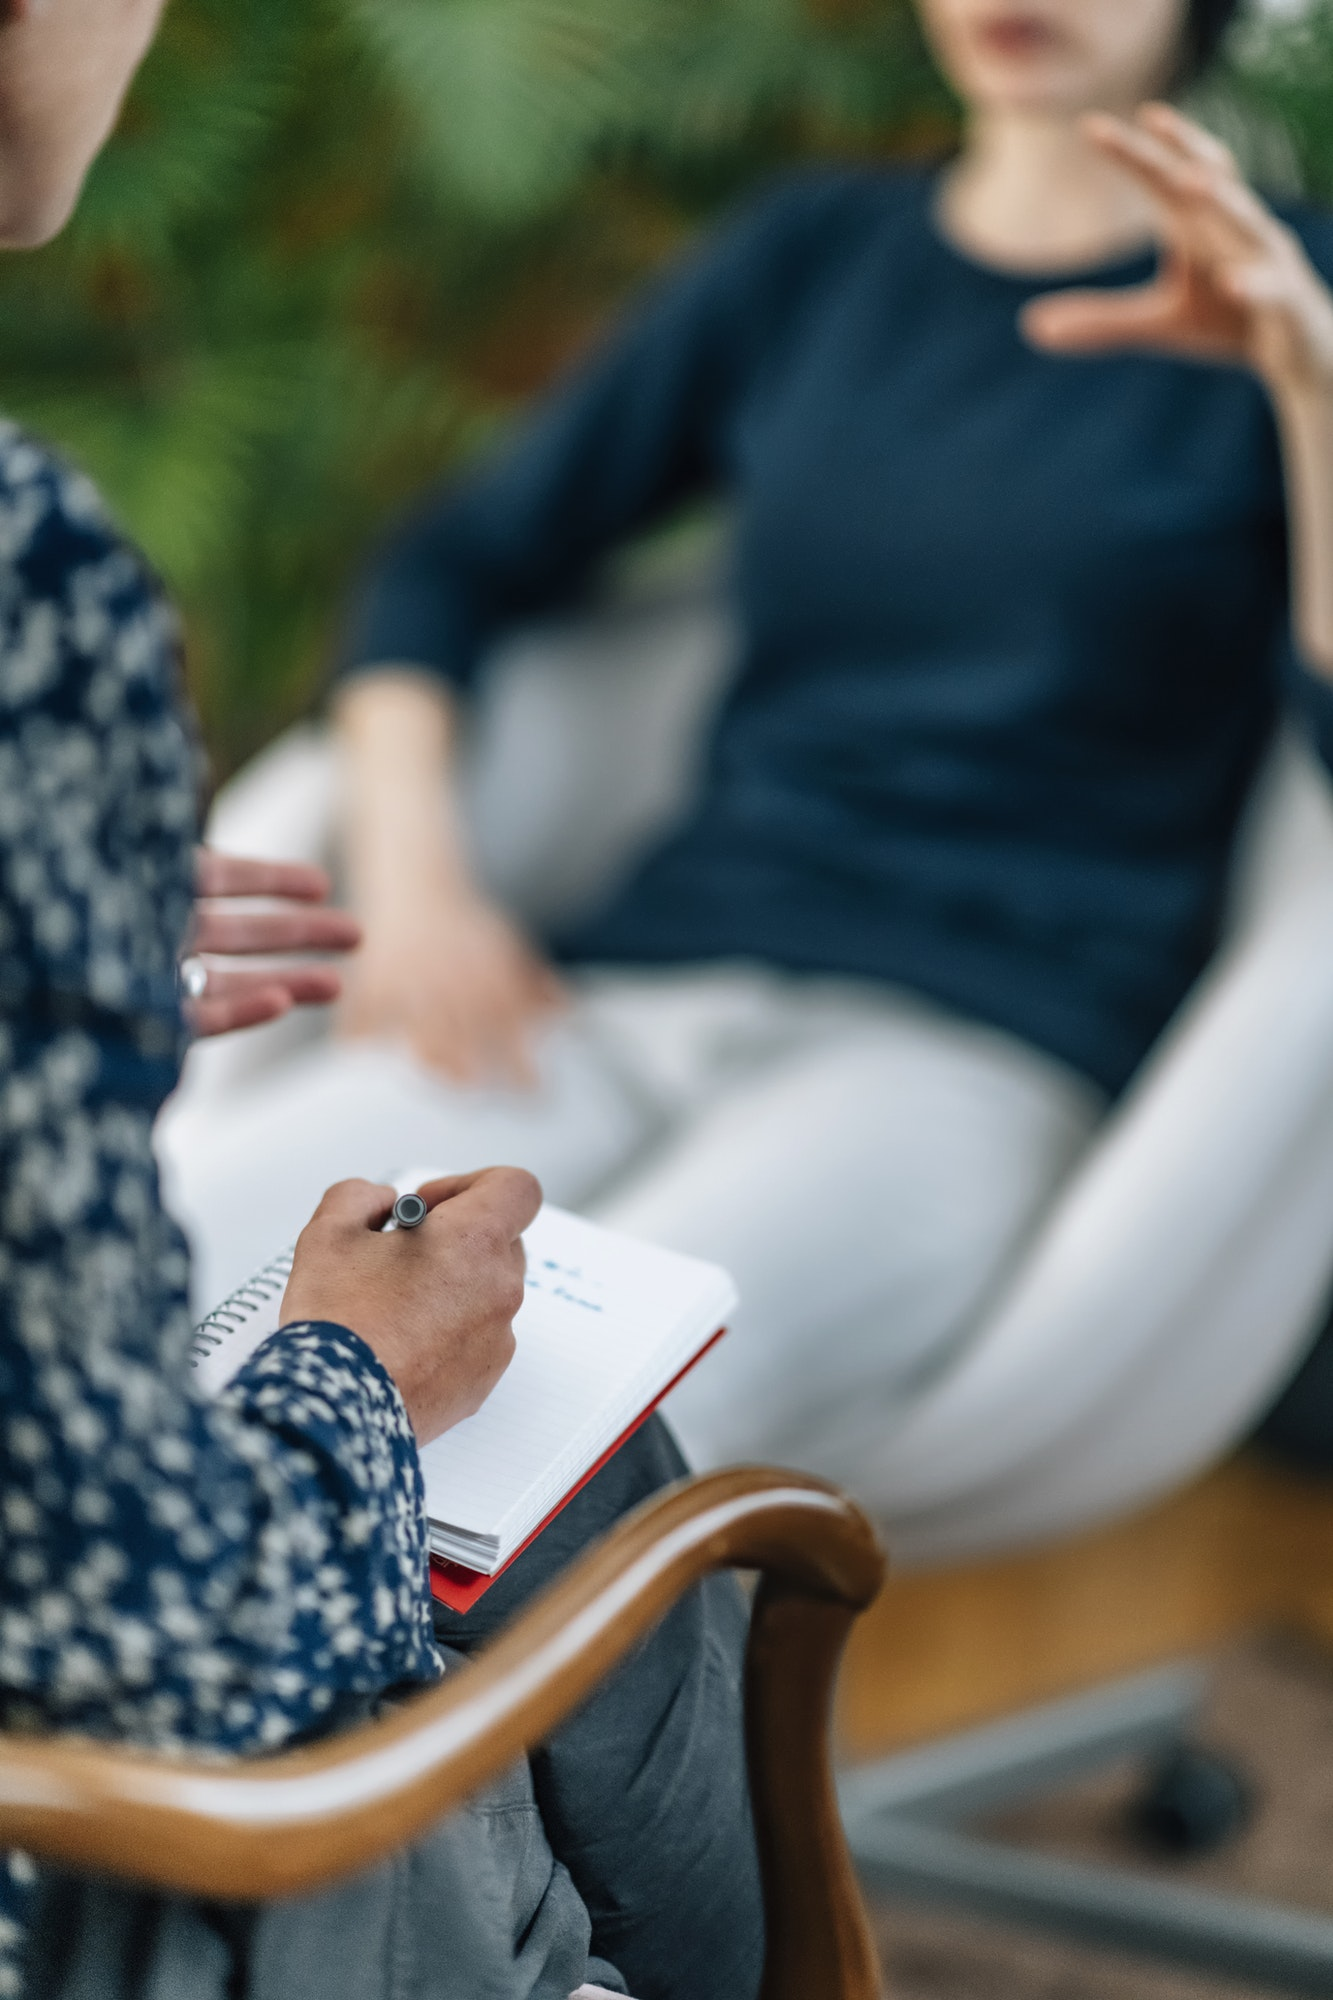 NLP or Neuro-Linguistic Programming Practitioner Having a Conversation with a Client